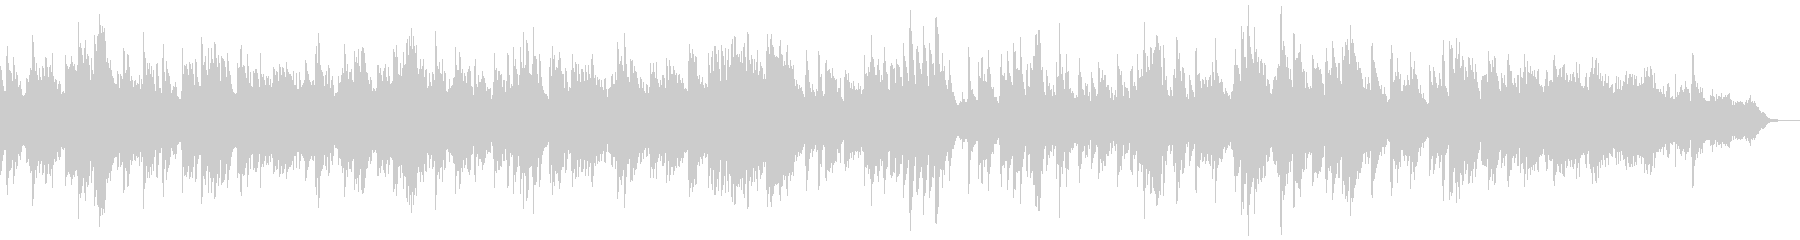 Loose Classic Nocturne (Fl.)'s unreproduced waveform